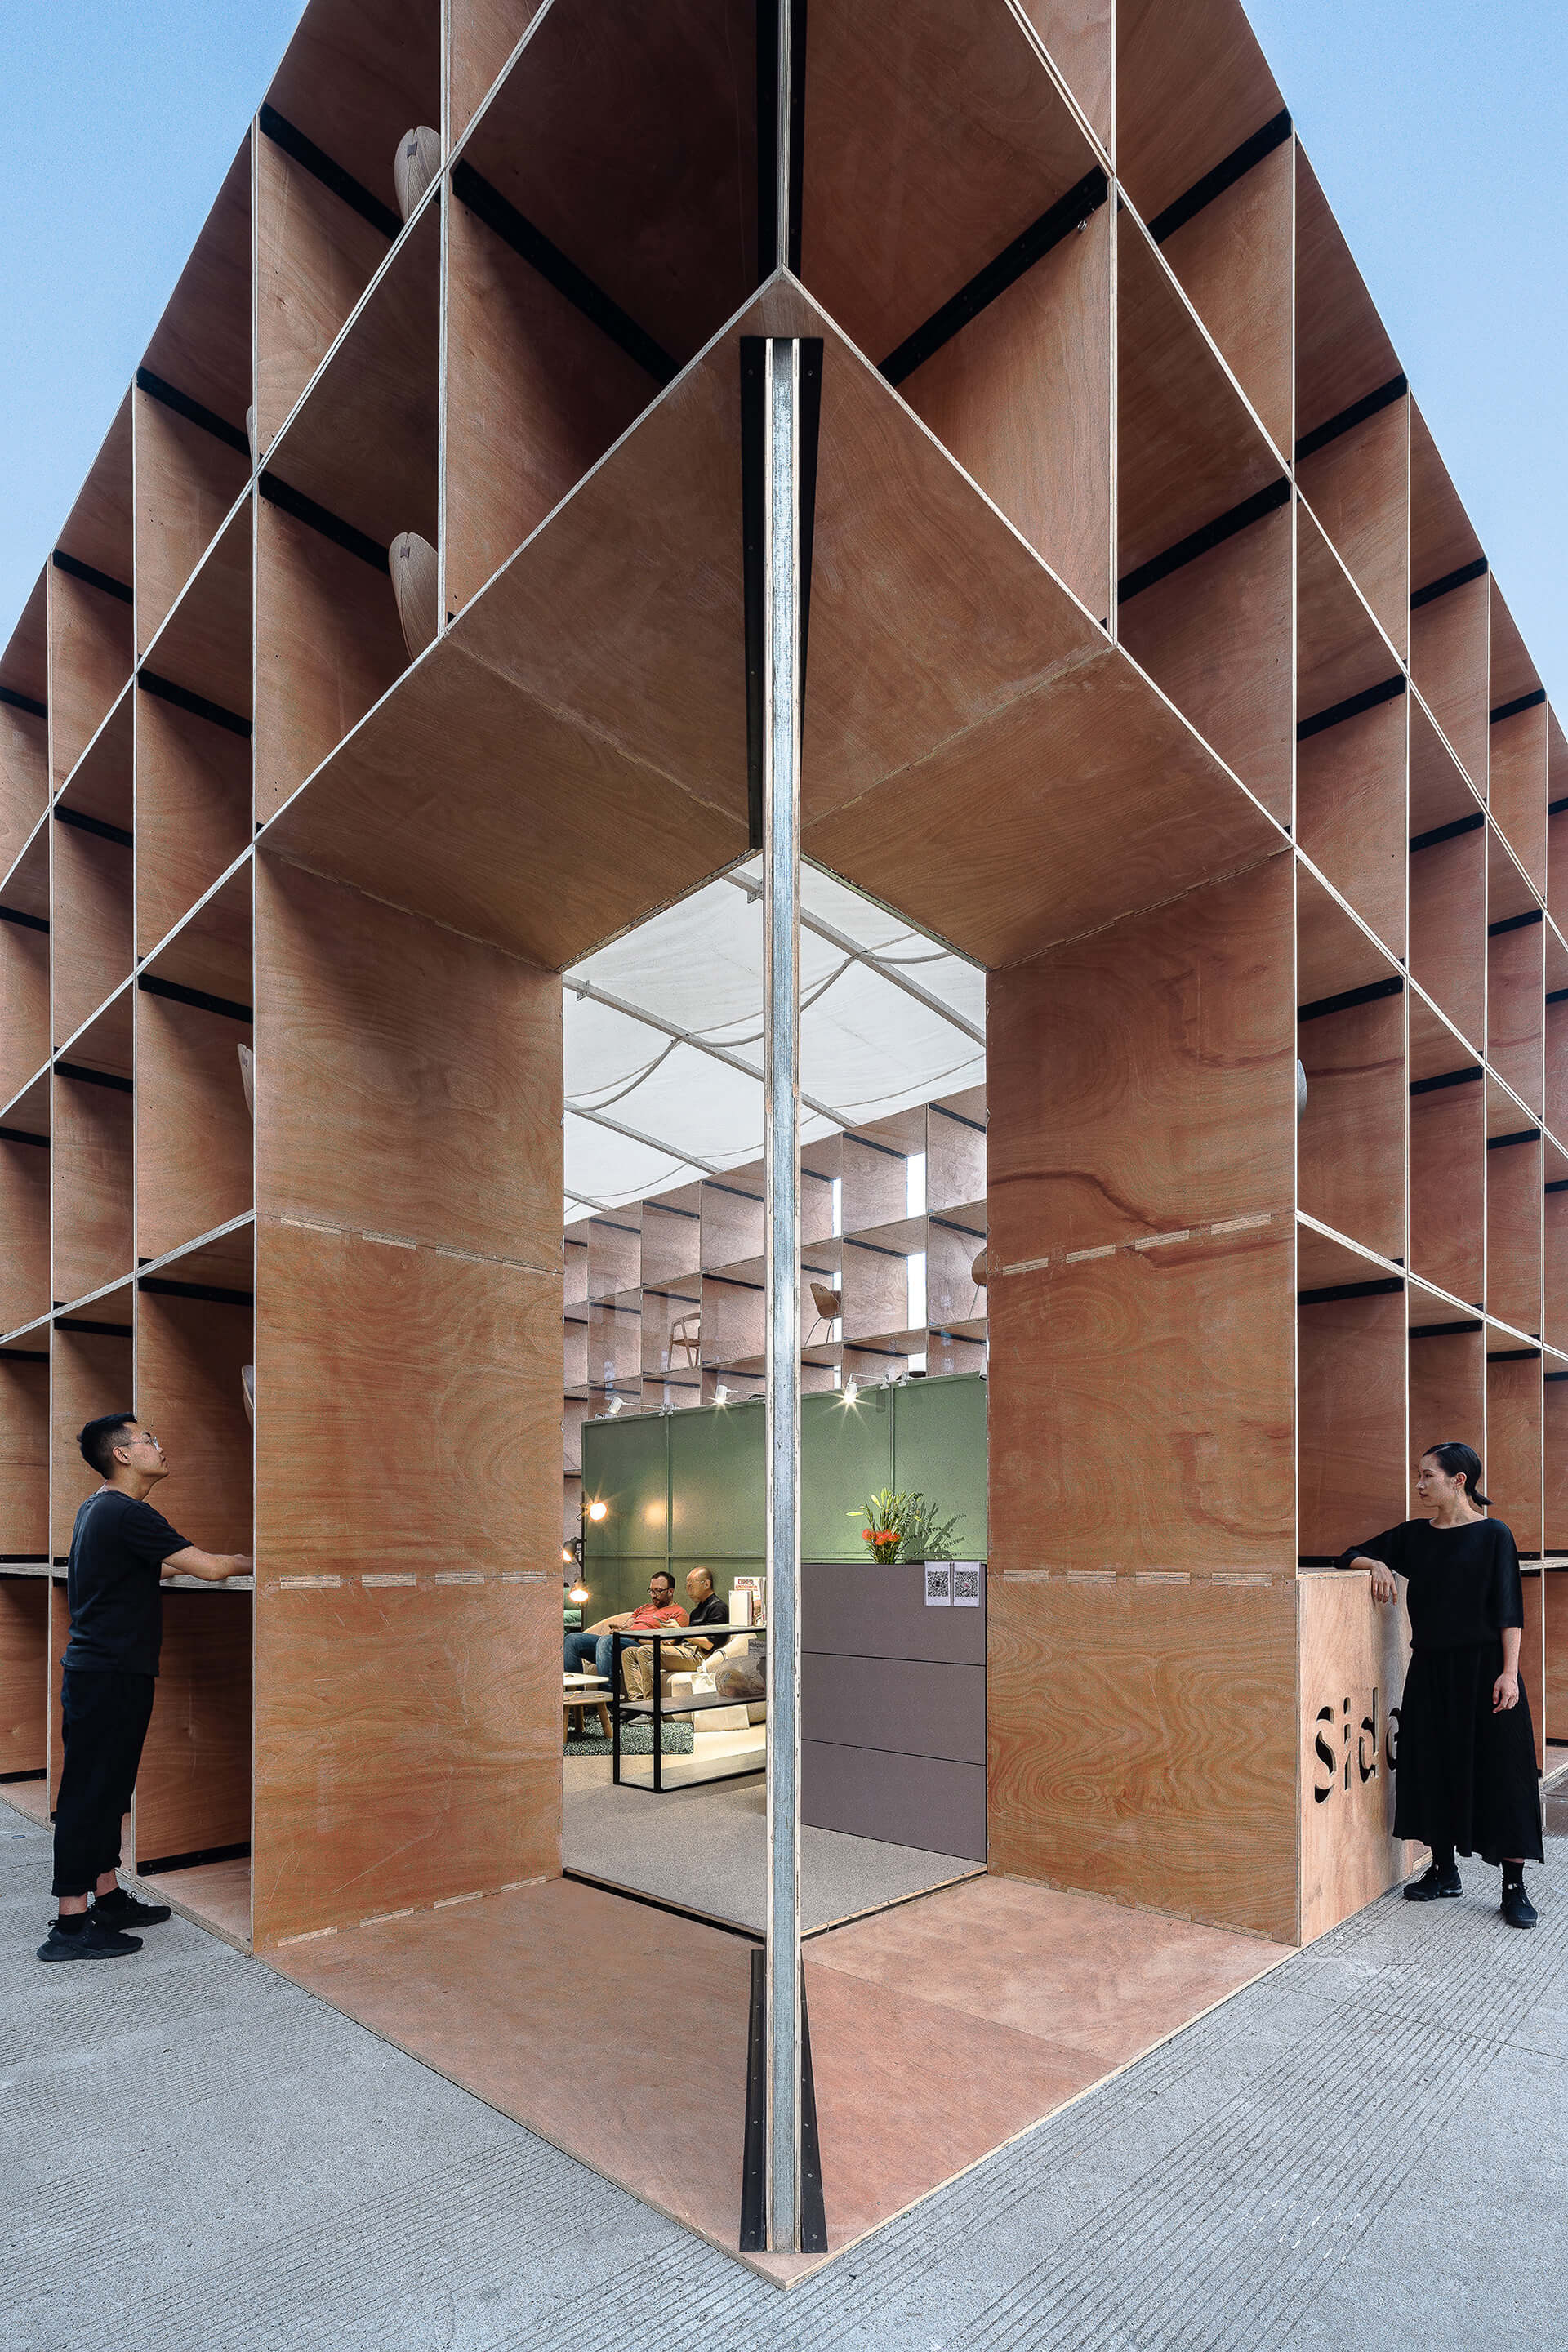 A void in the corner of the cube structure serves as the entrance | Pavilion S | Rooi Design and Research | STIRworld